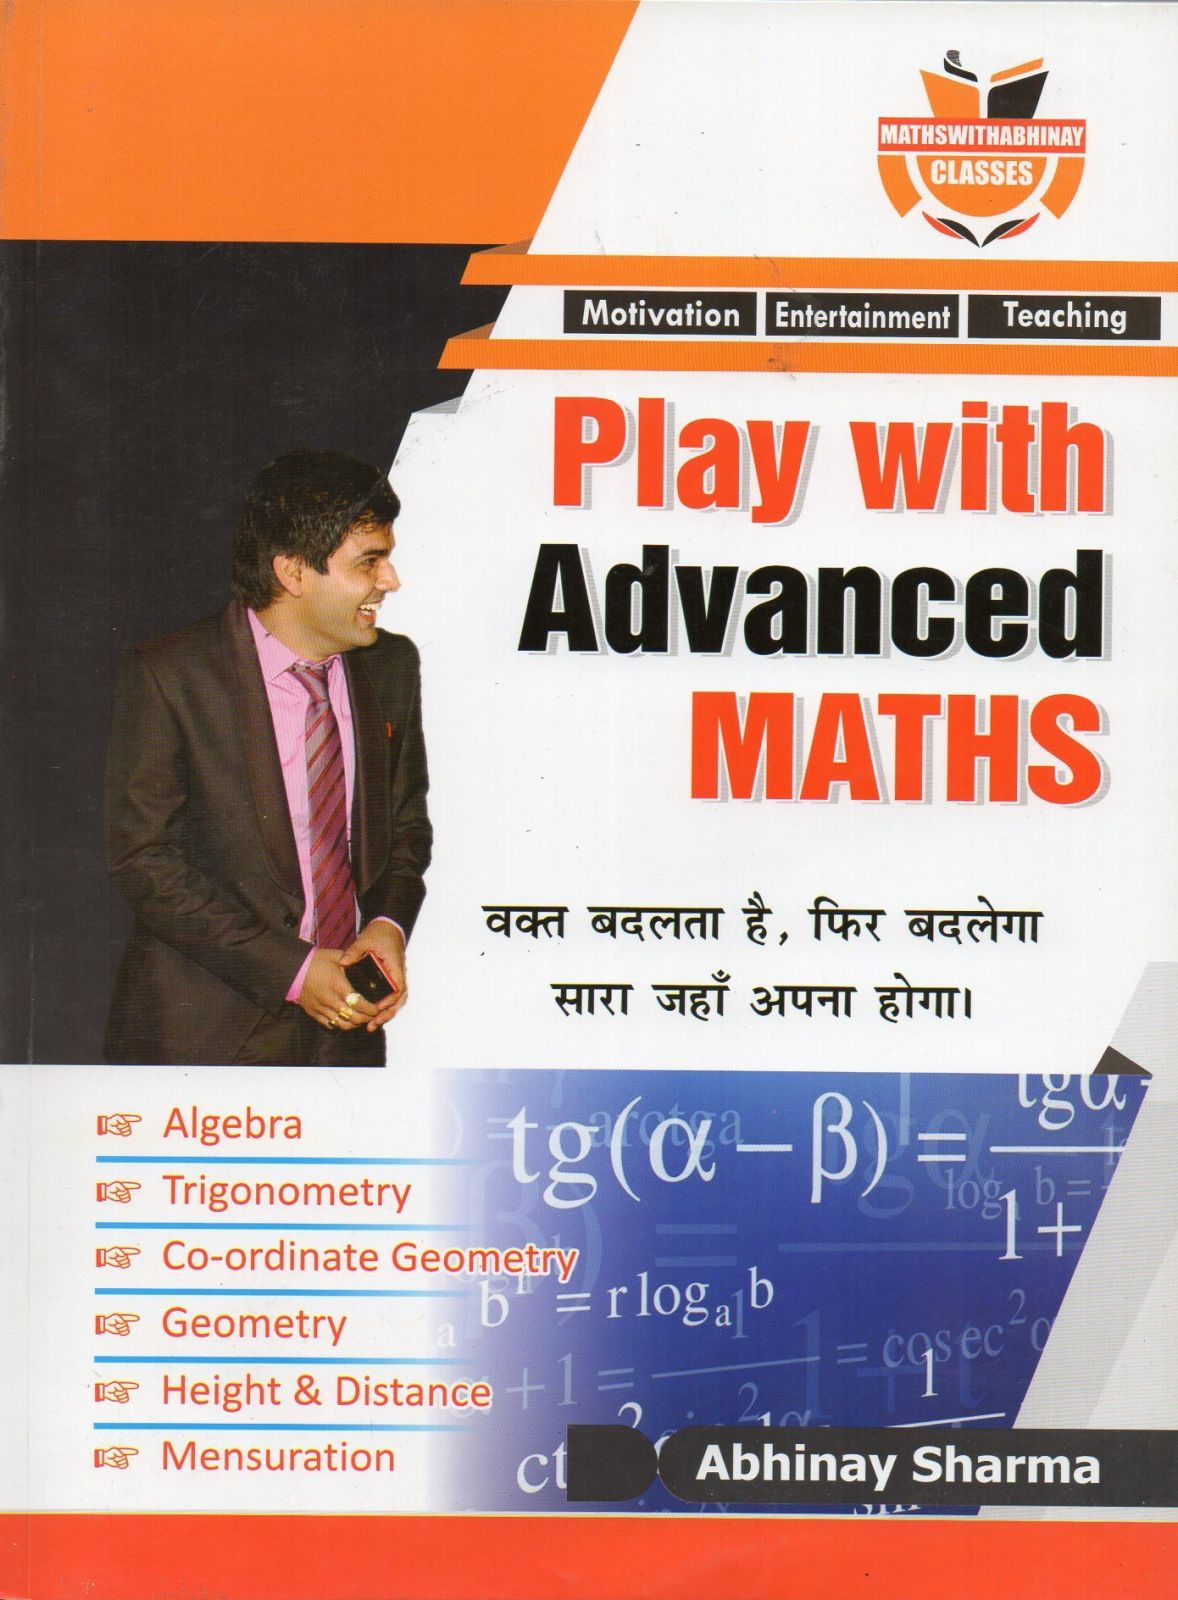 Delhi Abhinay Sharma Maths Classes – Shredz